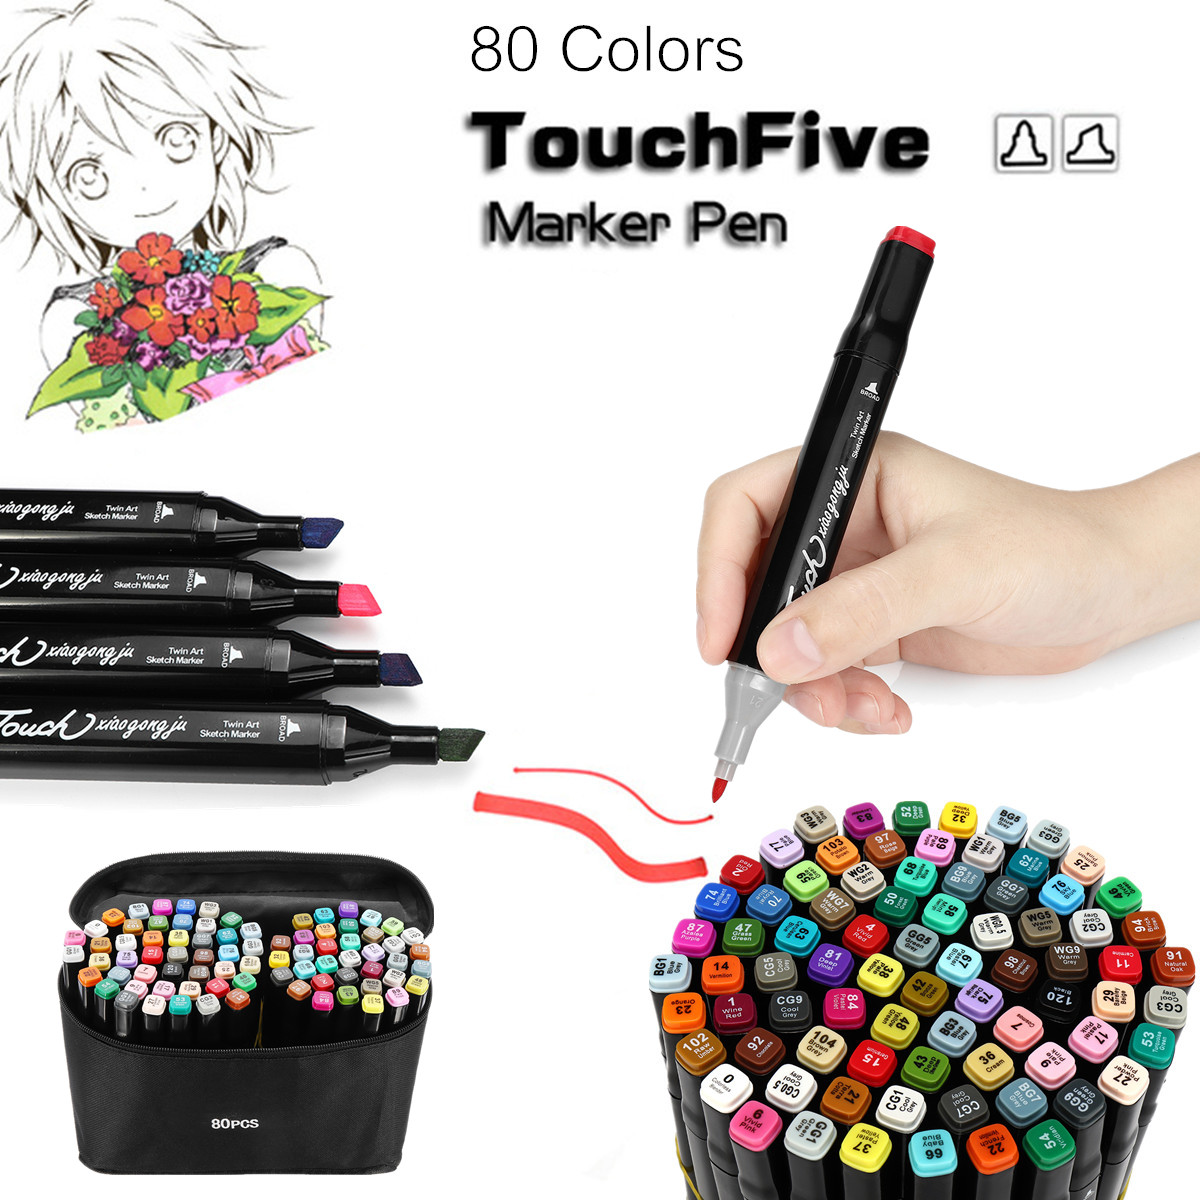 80 Colors Drawing TouchFive Markers Pen Dual Head Tips Graphic Art Set Gift + Outline Pen Colorful not Fading Round Oblique Tip touchnew 60 colors artist dual head sketch markers for manga marker school drawing marker pen design supplies 5type